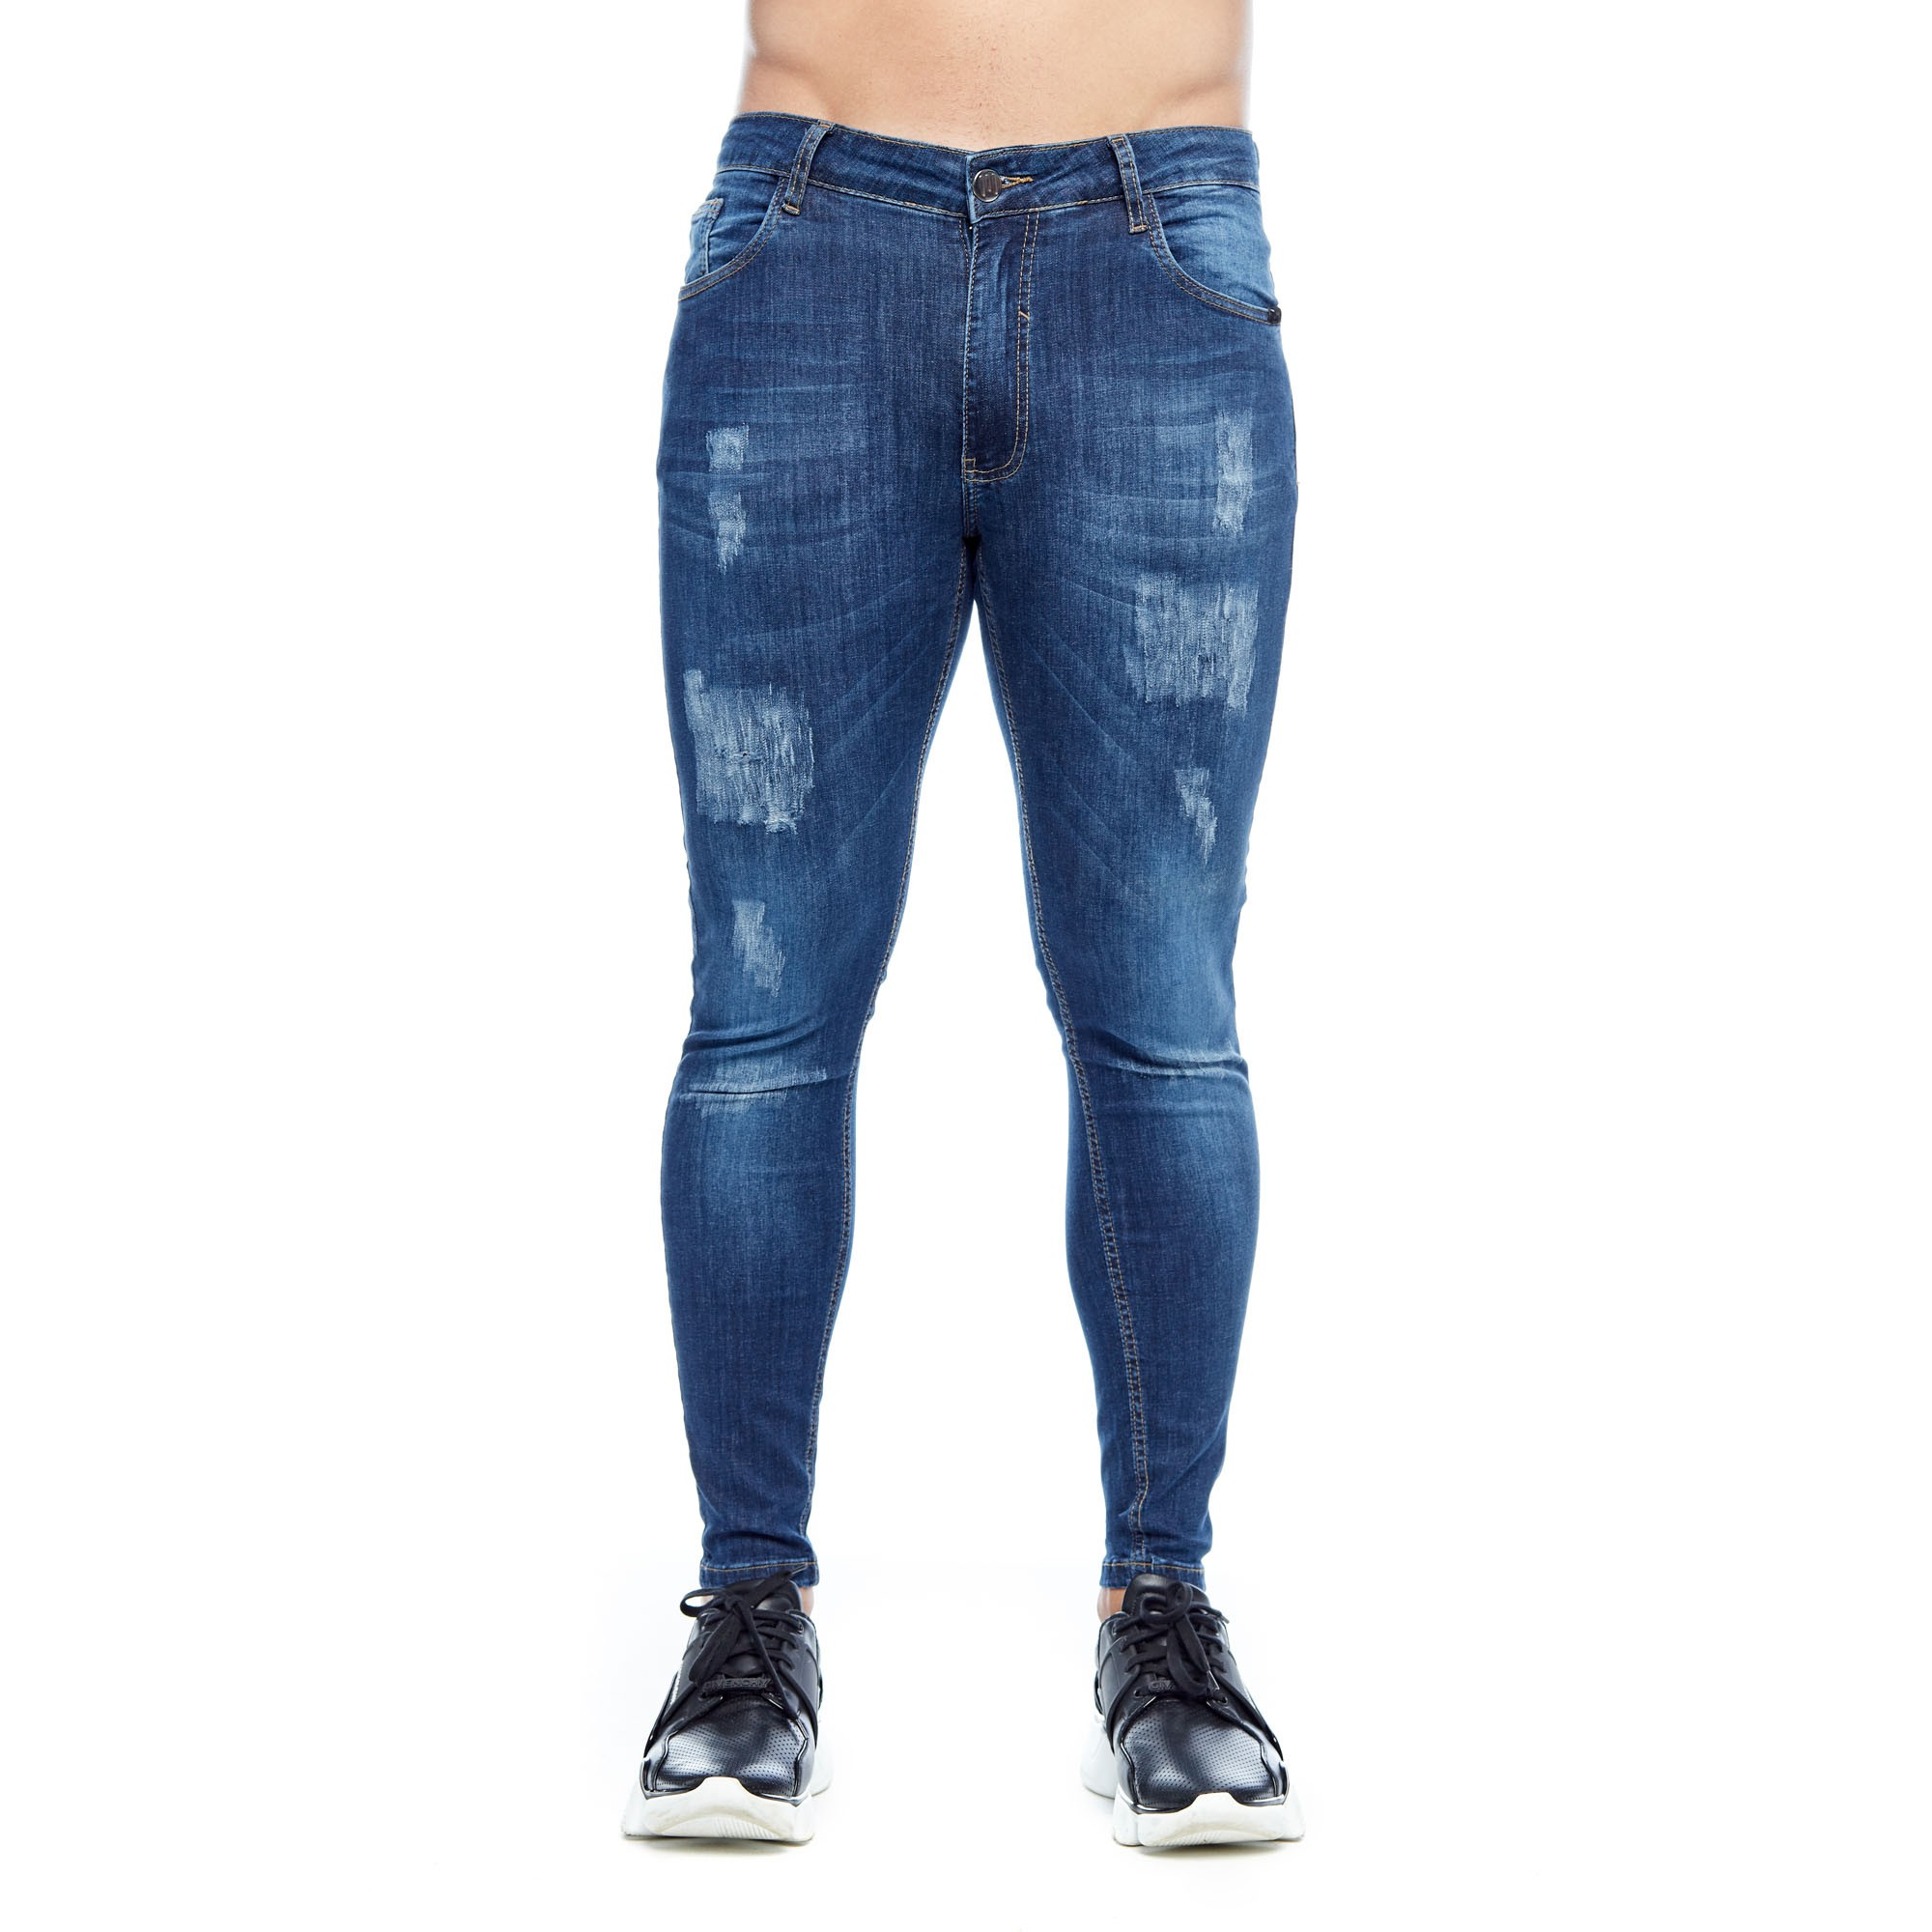 Calça Jeans Super Body Skinny Evolvee